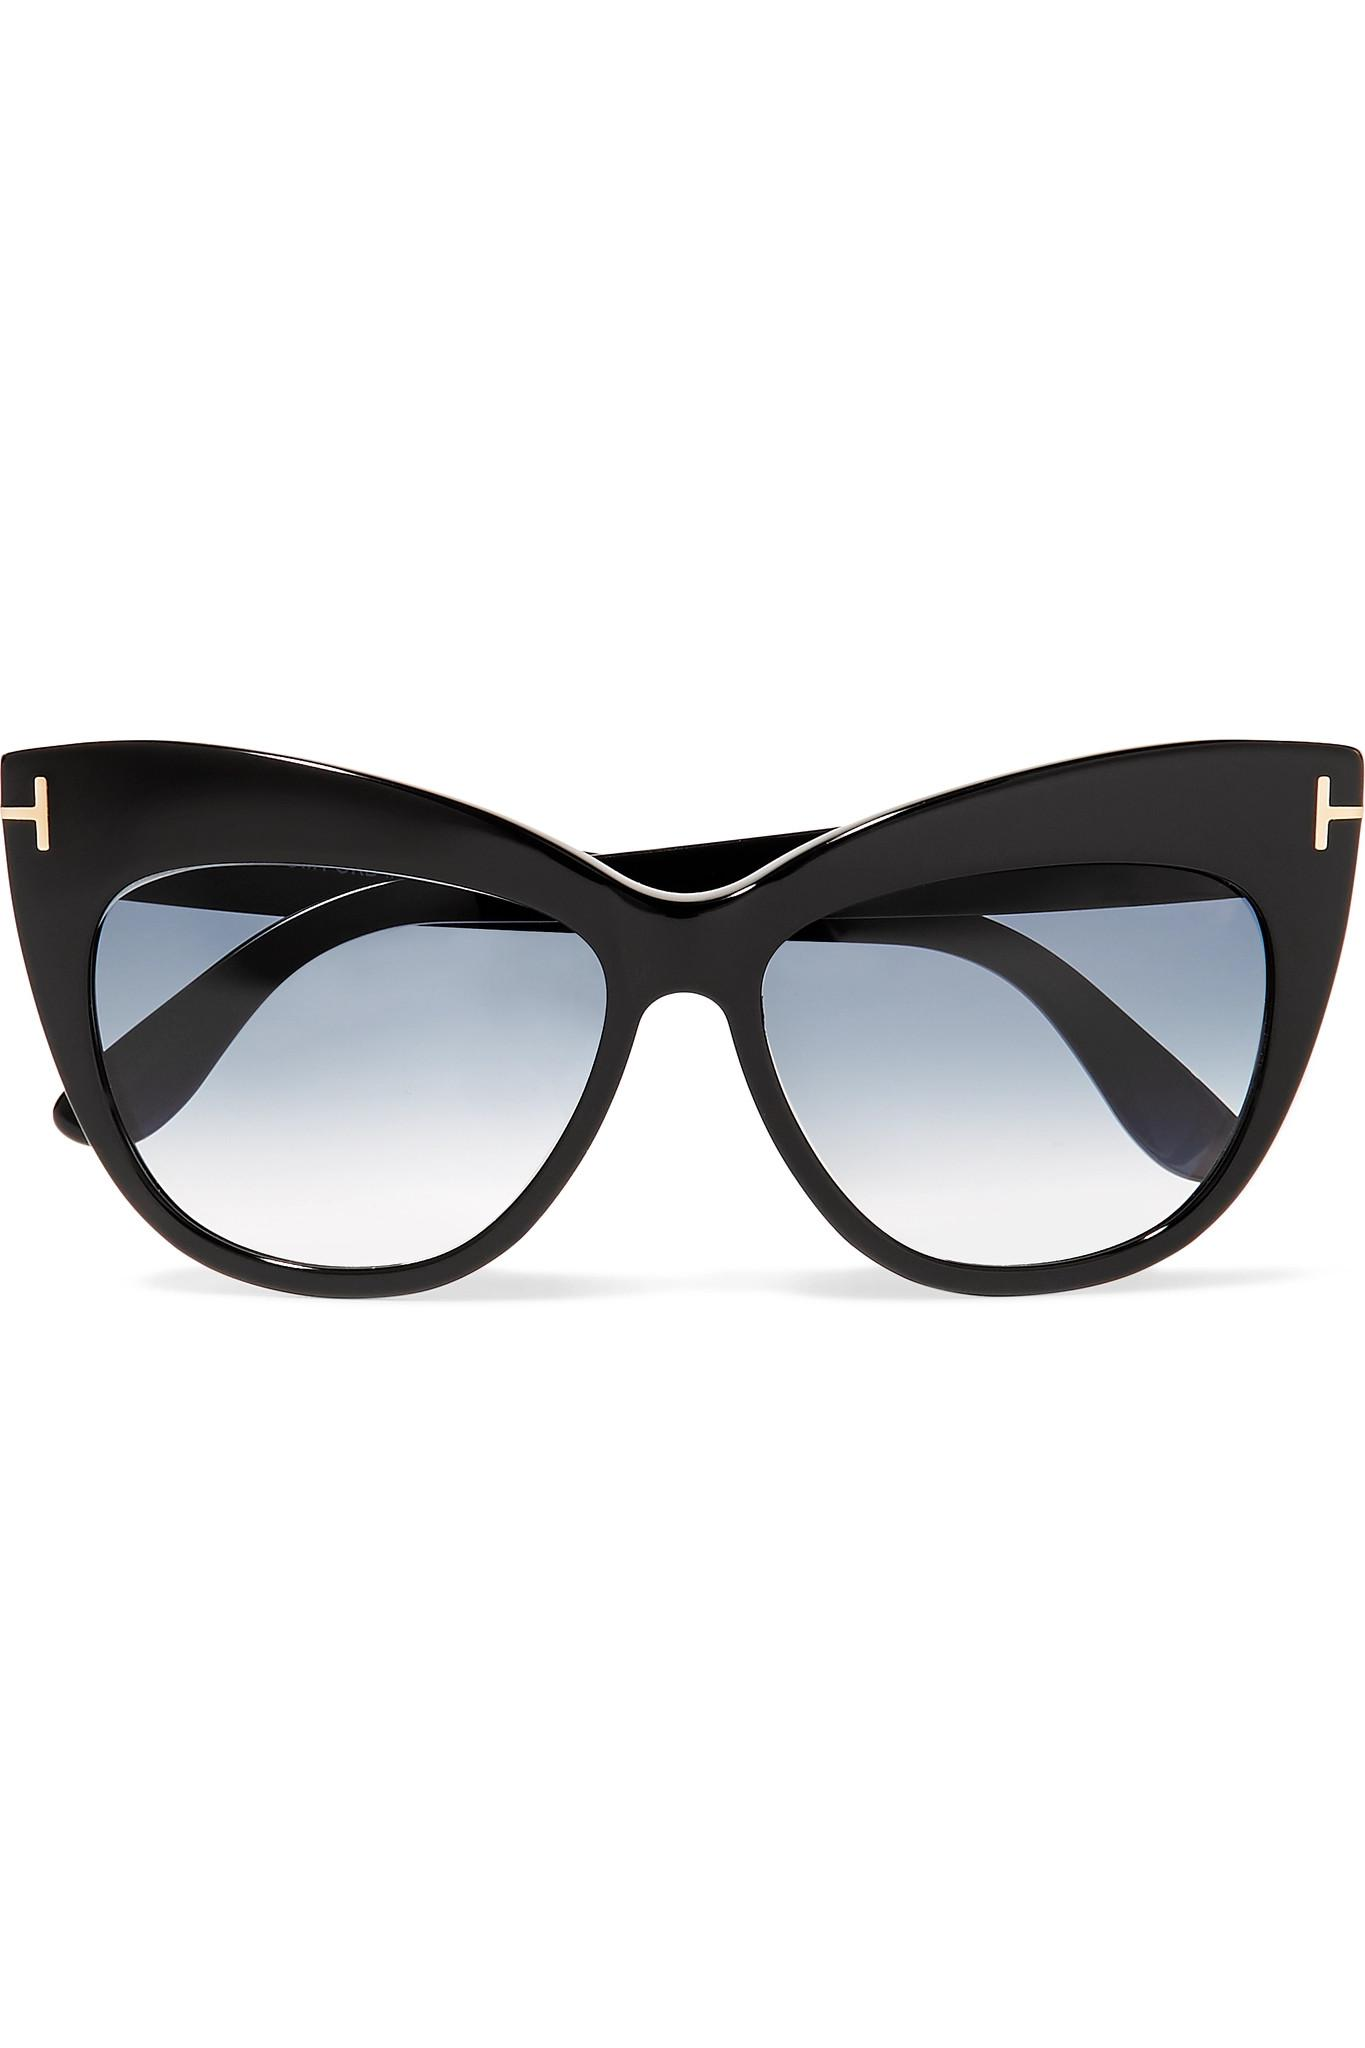 174462a981a68 Gallery. Previously sold at  NET-A-PORTER · Women s Tom Ford Cat Eye  Women s Acetate Sunglasses ...